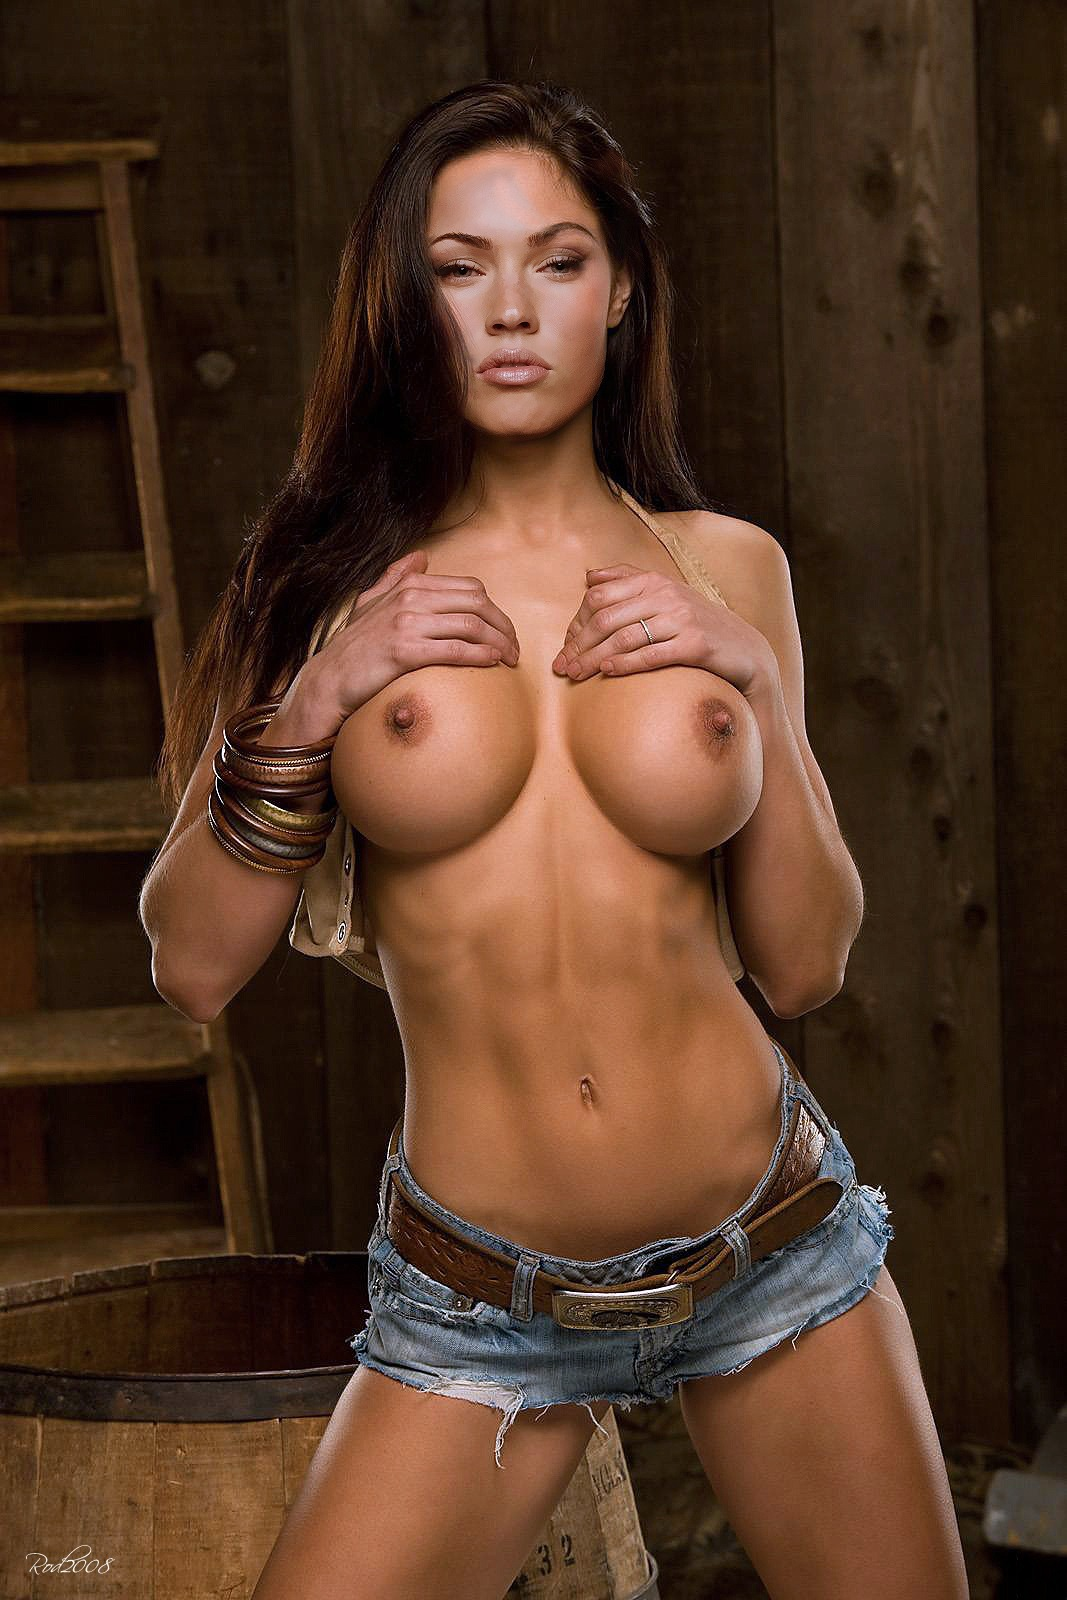 old man category of this big tits porn site